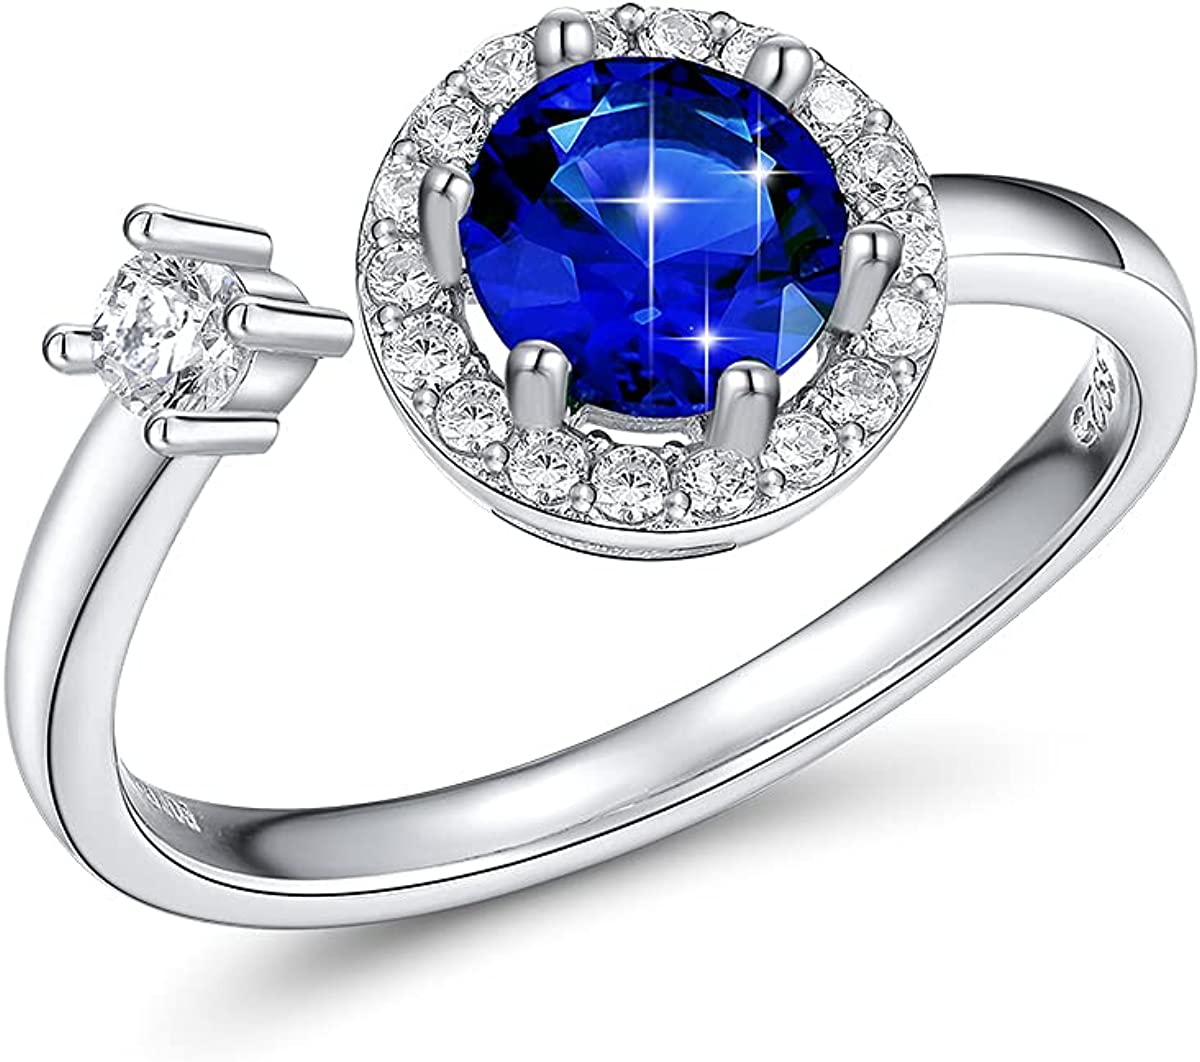 Birthstone Rings for Max 57% OFF Women Girls Womens Sterling Mont Silver 925 Los Angeles Mall